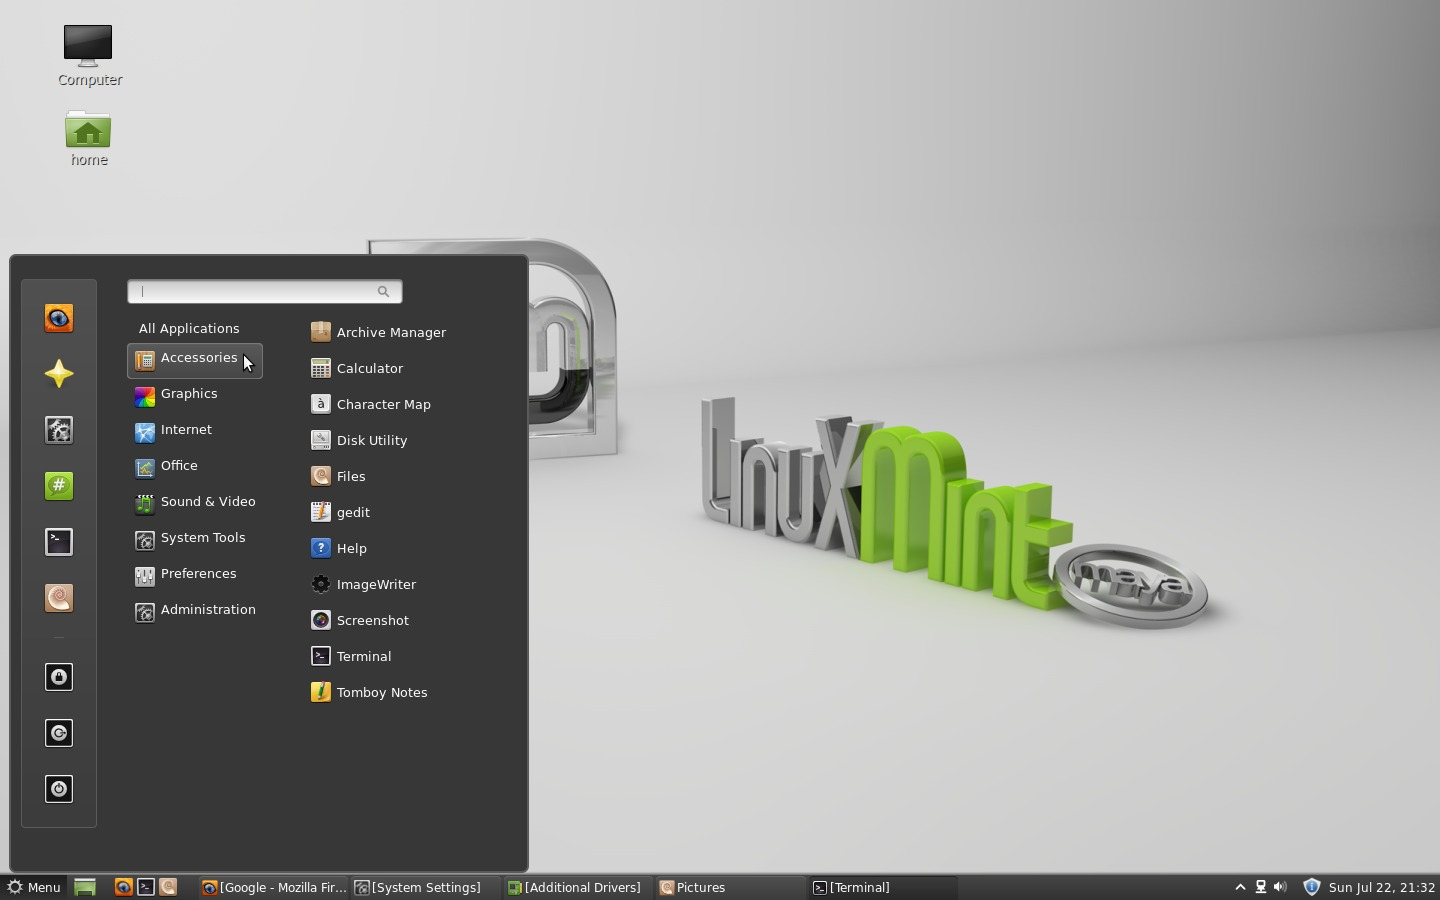 Linux Mint 13 : Cinnamon Desktop